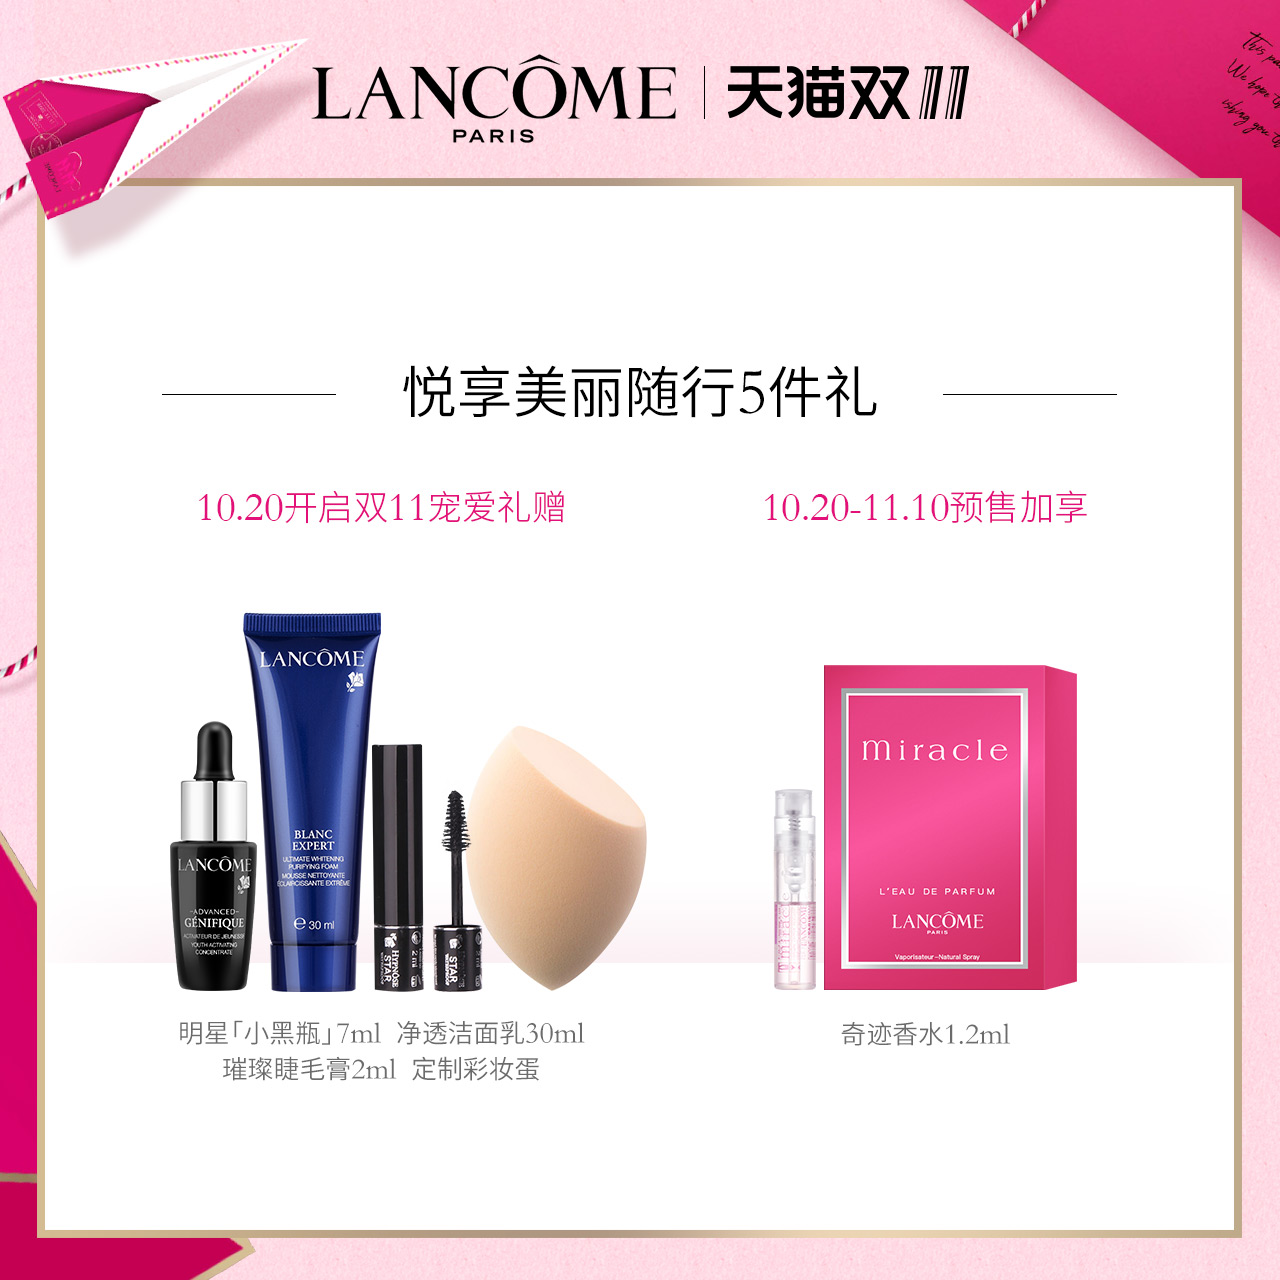 Usd 1688 11 Pre Sale Lancome New Makeup Foundation 30ml Blanc Expert Ultimate Whitening Purifying Foam Lightbox Moreview